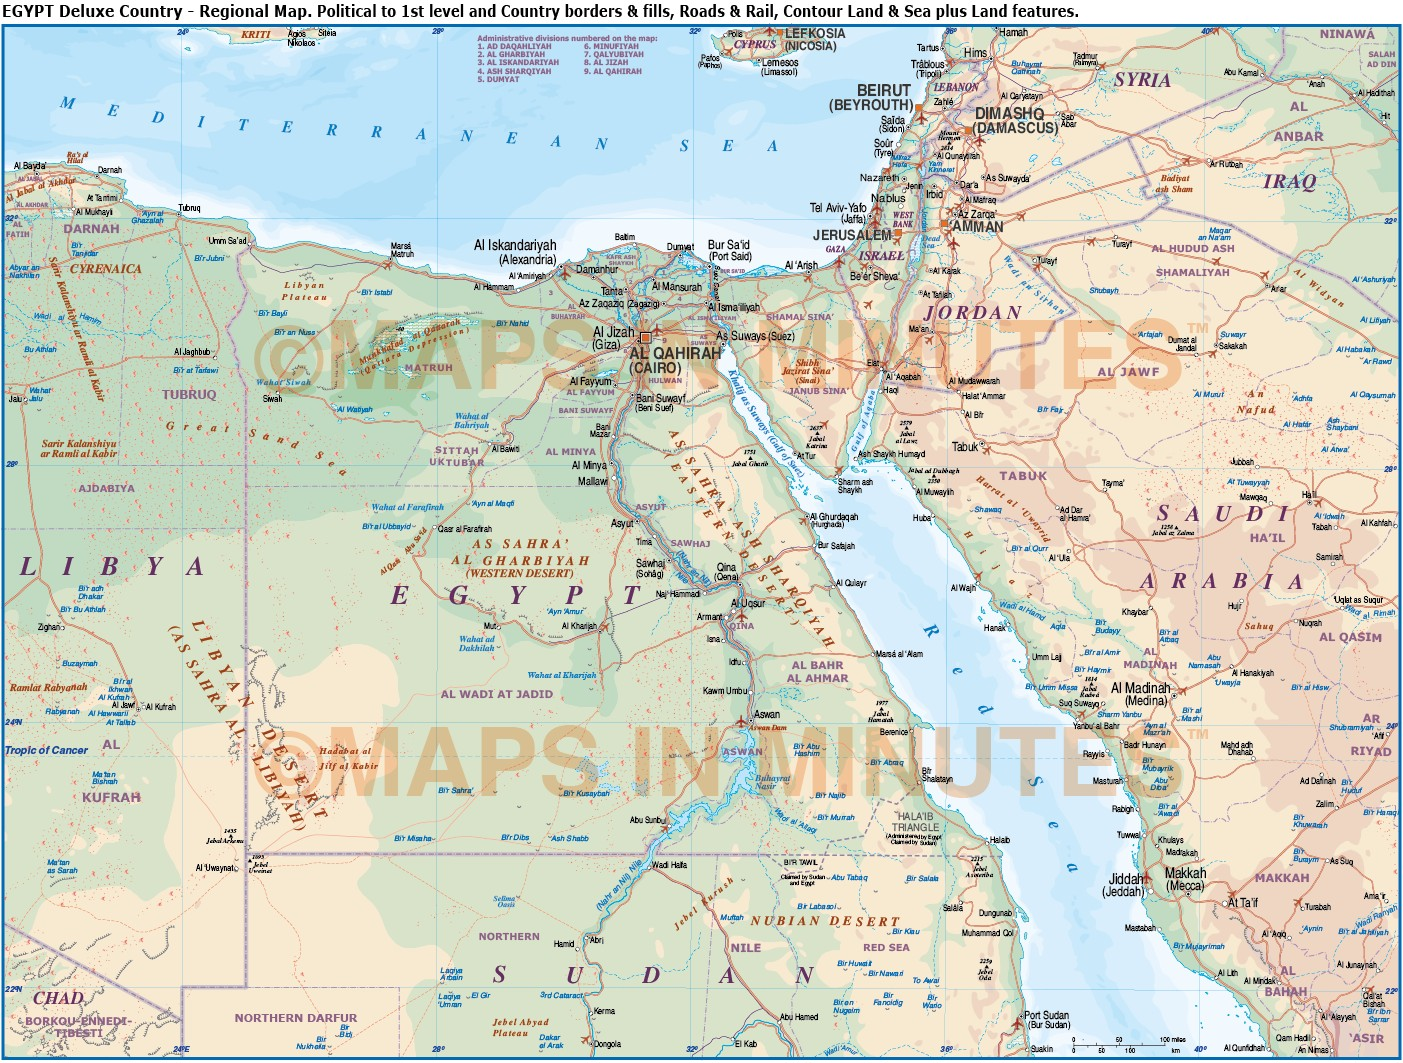 Egypt digital vector political road rail map in Illustrator and